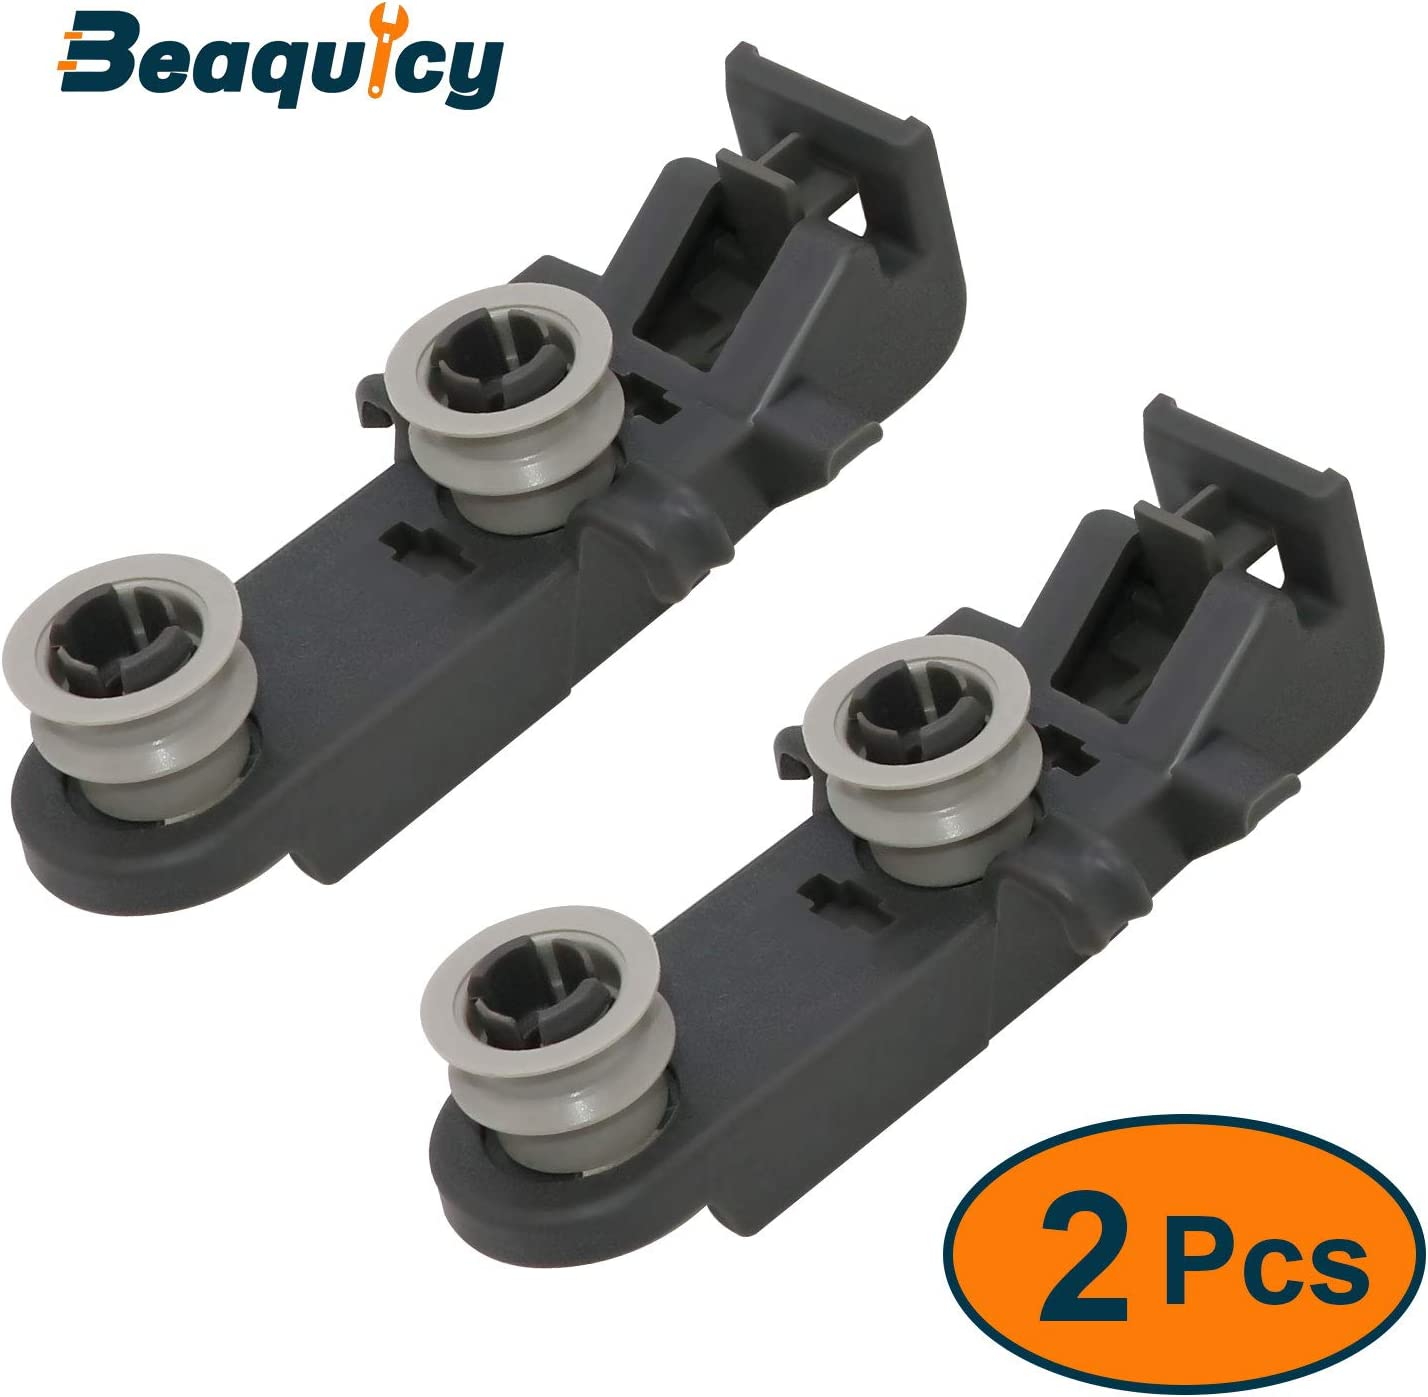 W10350401 Dishwasher Rack Roller Wheel by Beaquicy - Replacement for Whirlpool Admiral Kenmore Jenn-Air dishwasher - Dishrack Wheel Assembly (2 Pack)